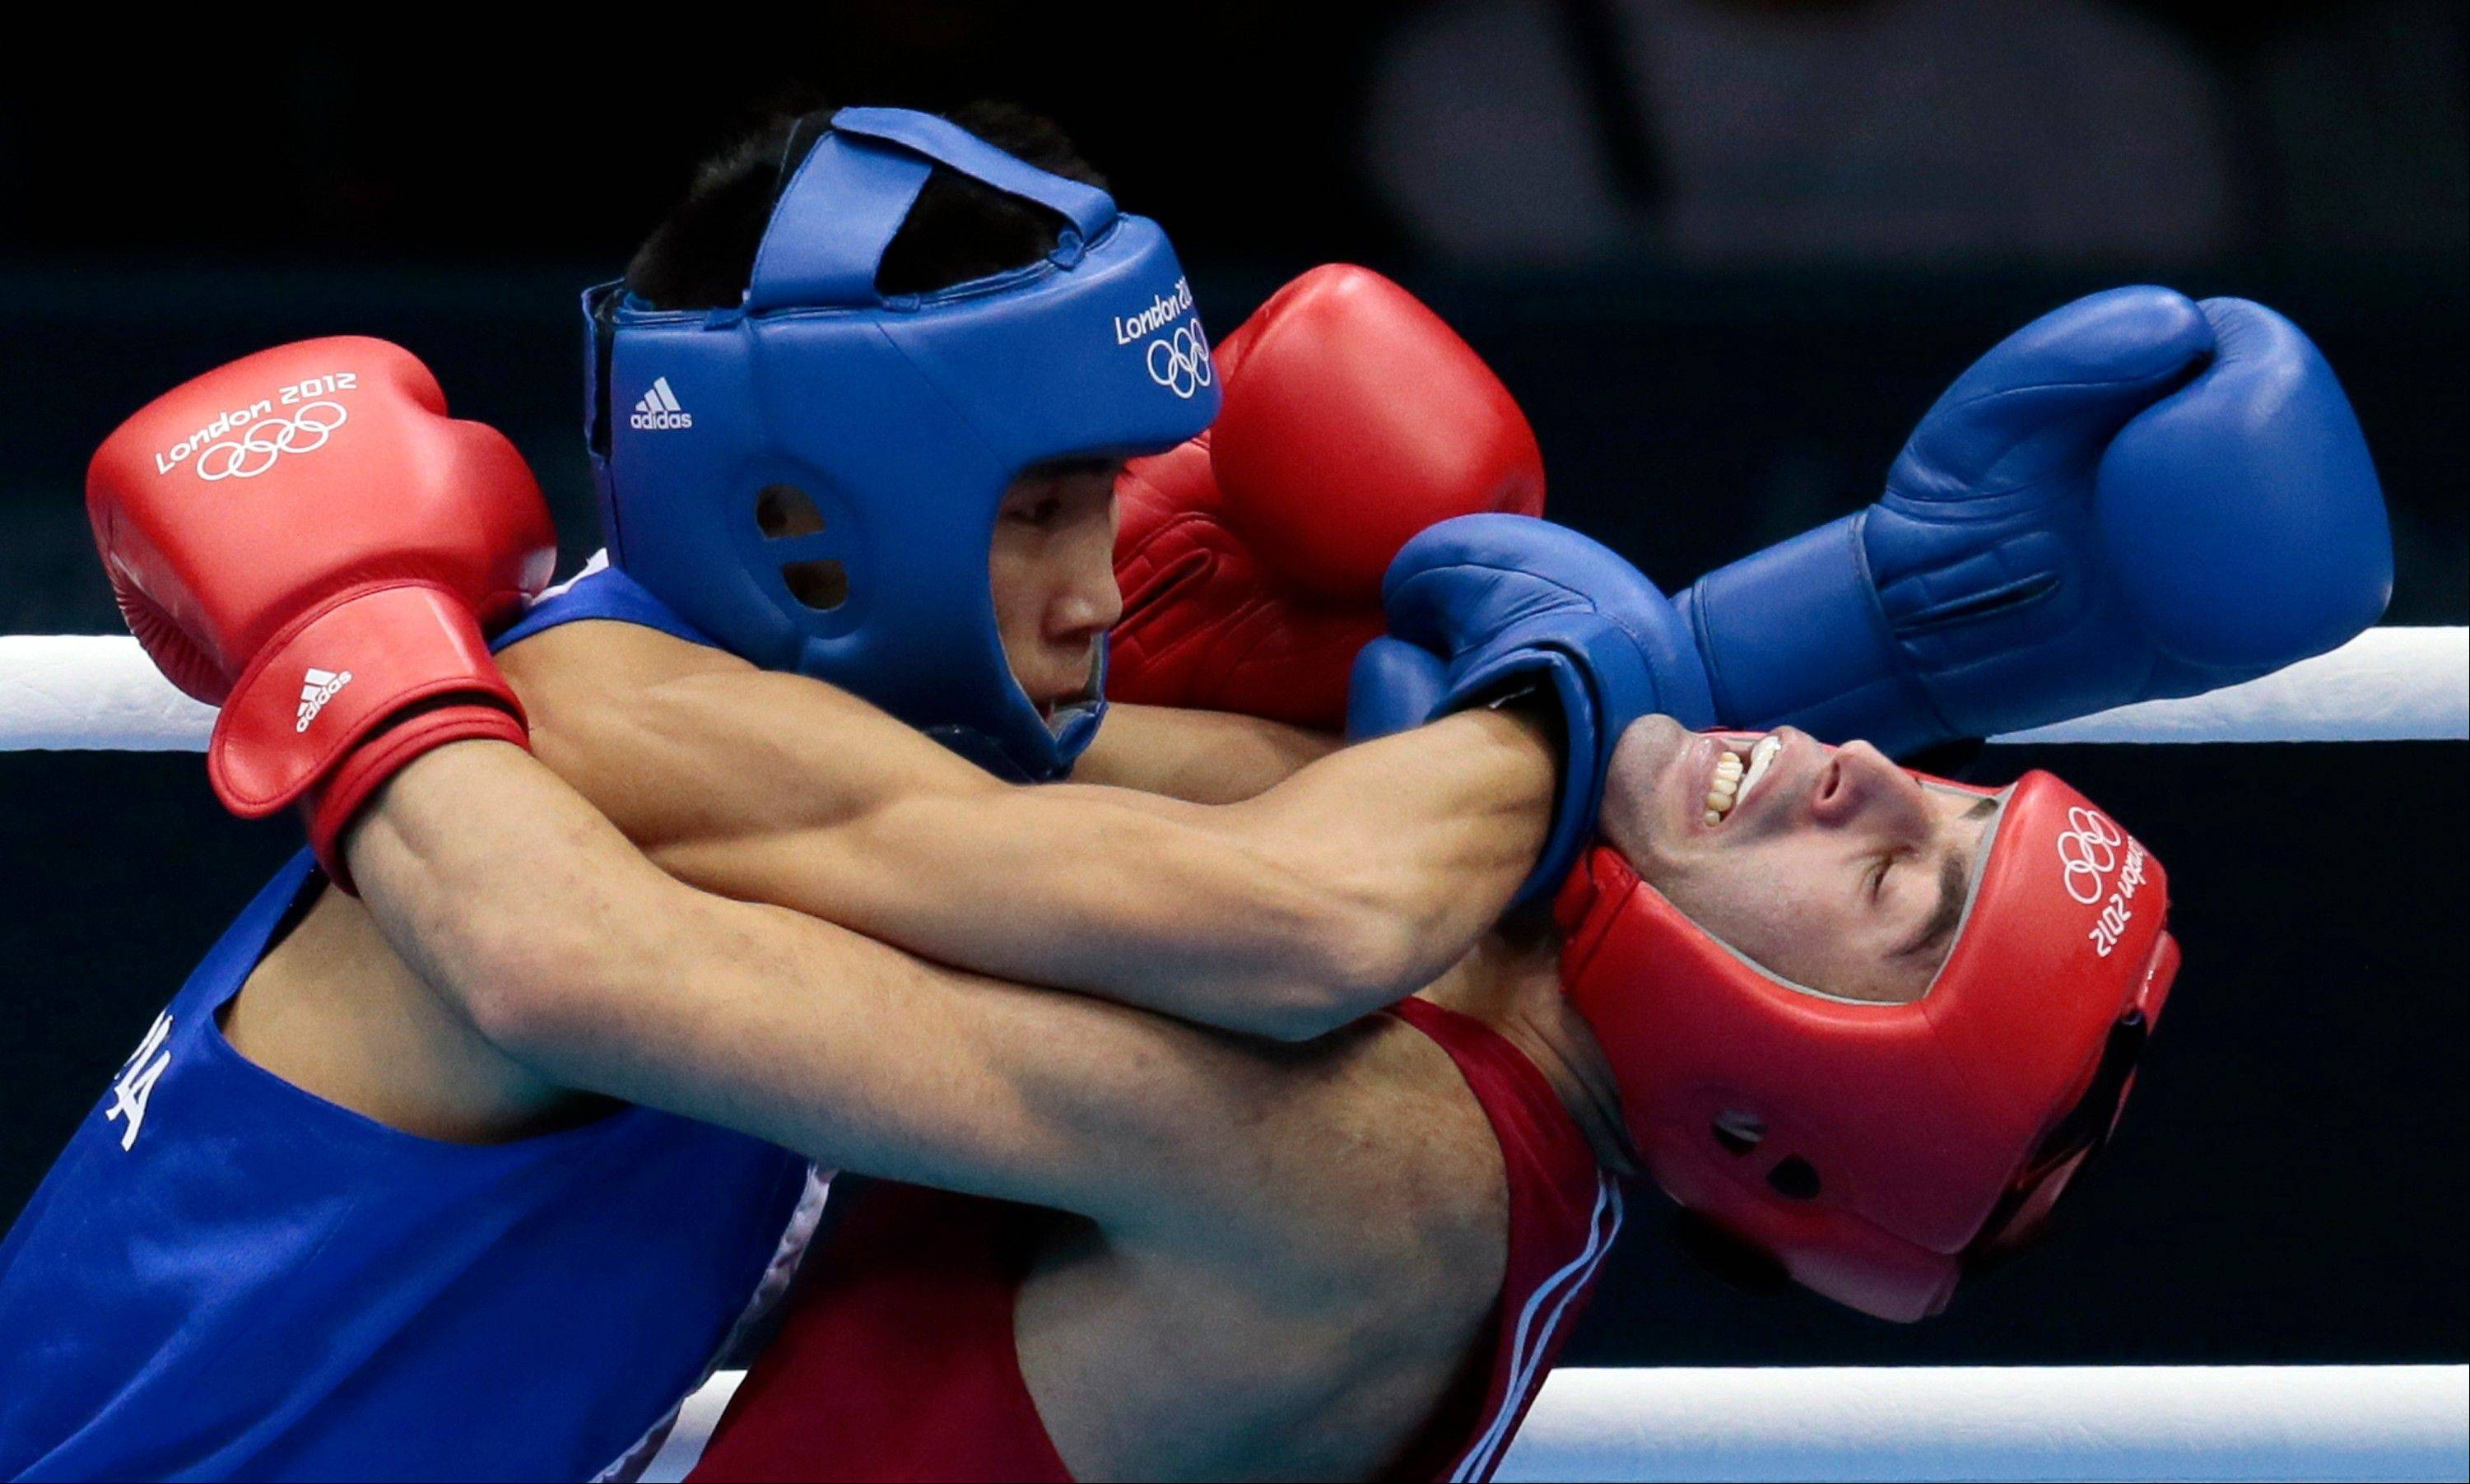 Russia's Misha Aloian, right, fights Mongolia's Tugstsogt Nyambayar, during their men's flyweight 52-kg semifinal boxing match at the 2012 Summer Olympics, Friday, Aug. 10, 2012, in London.